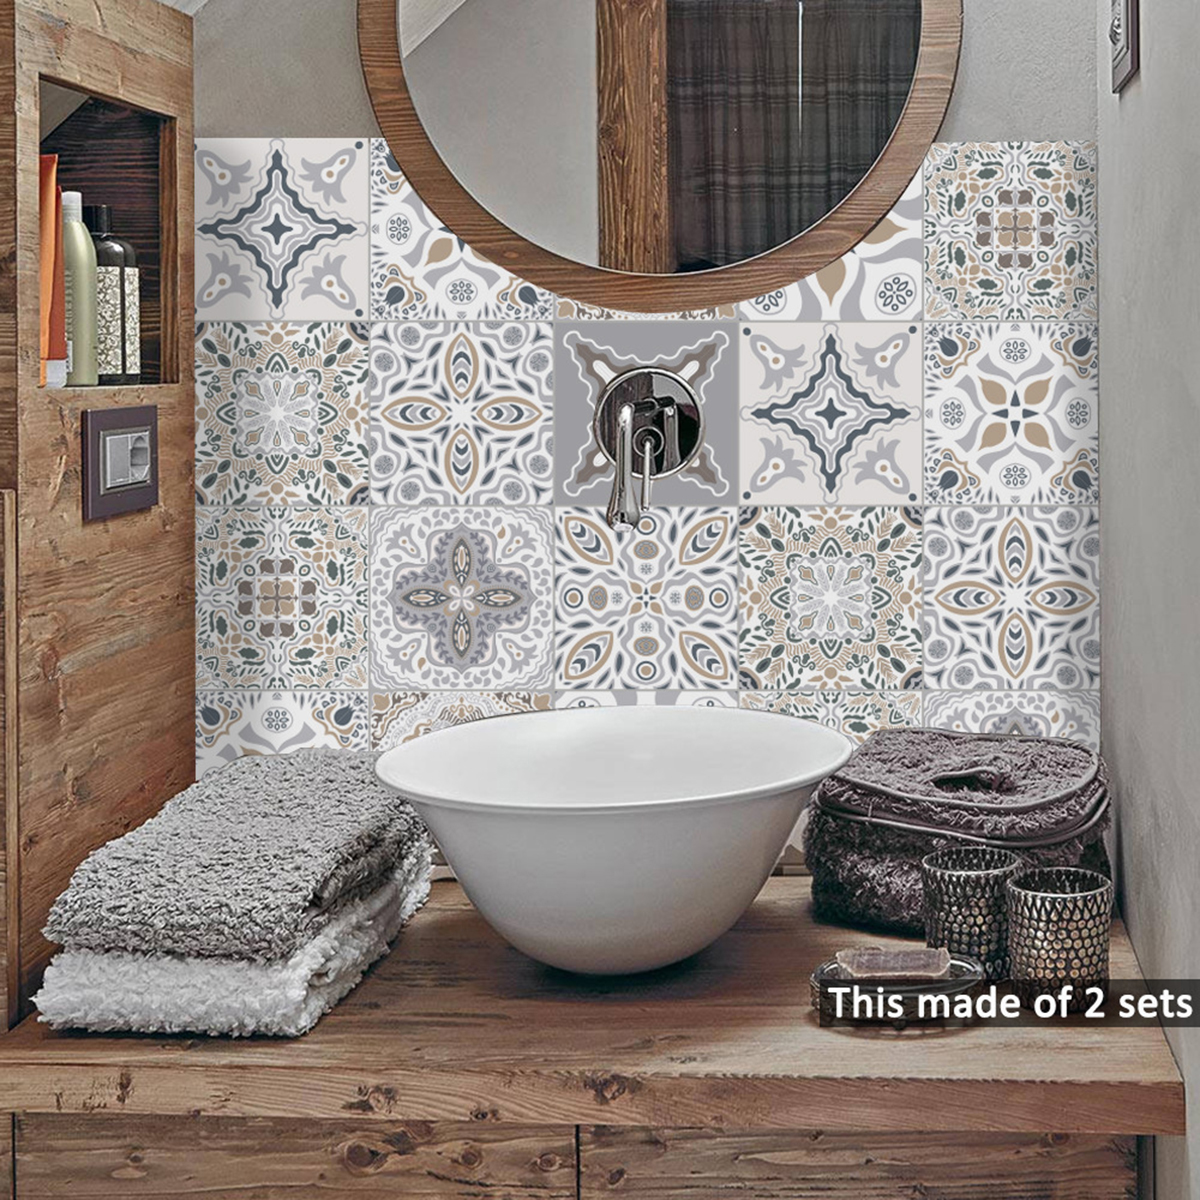 10Pcs Moroccan Self-adhesive Tile Wall Floor Sticker ...